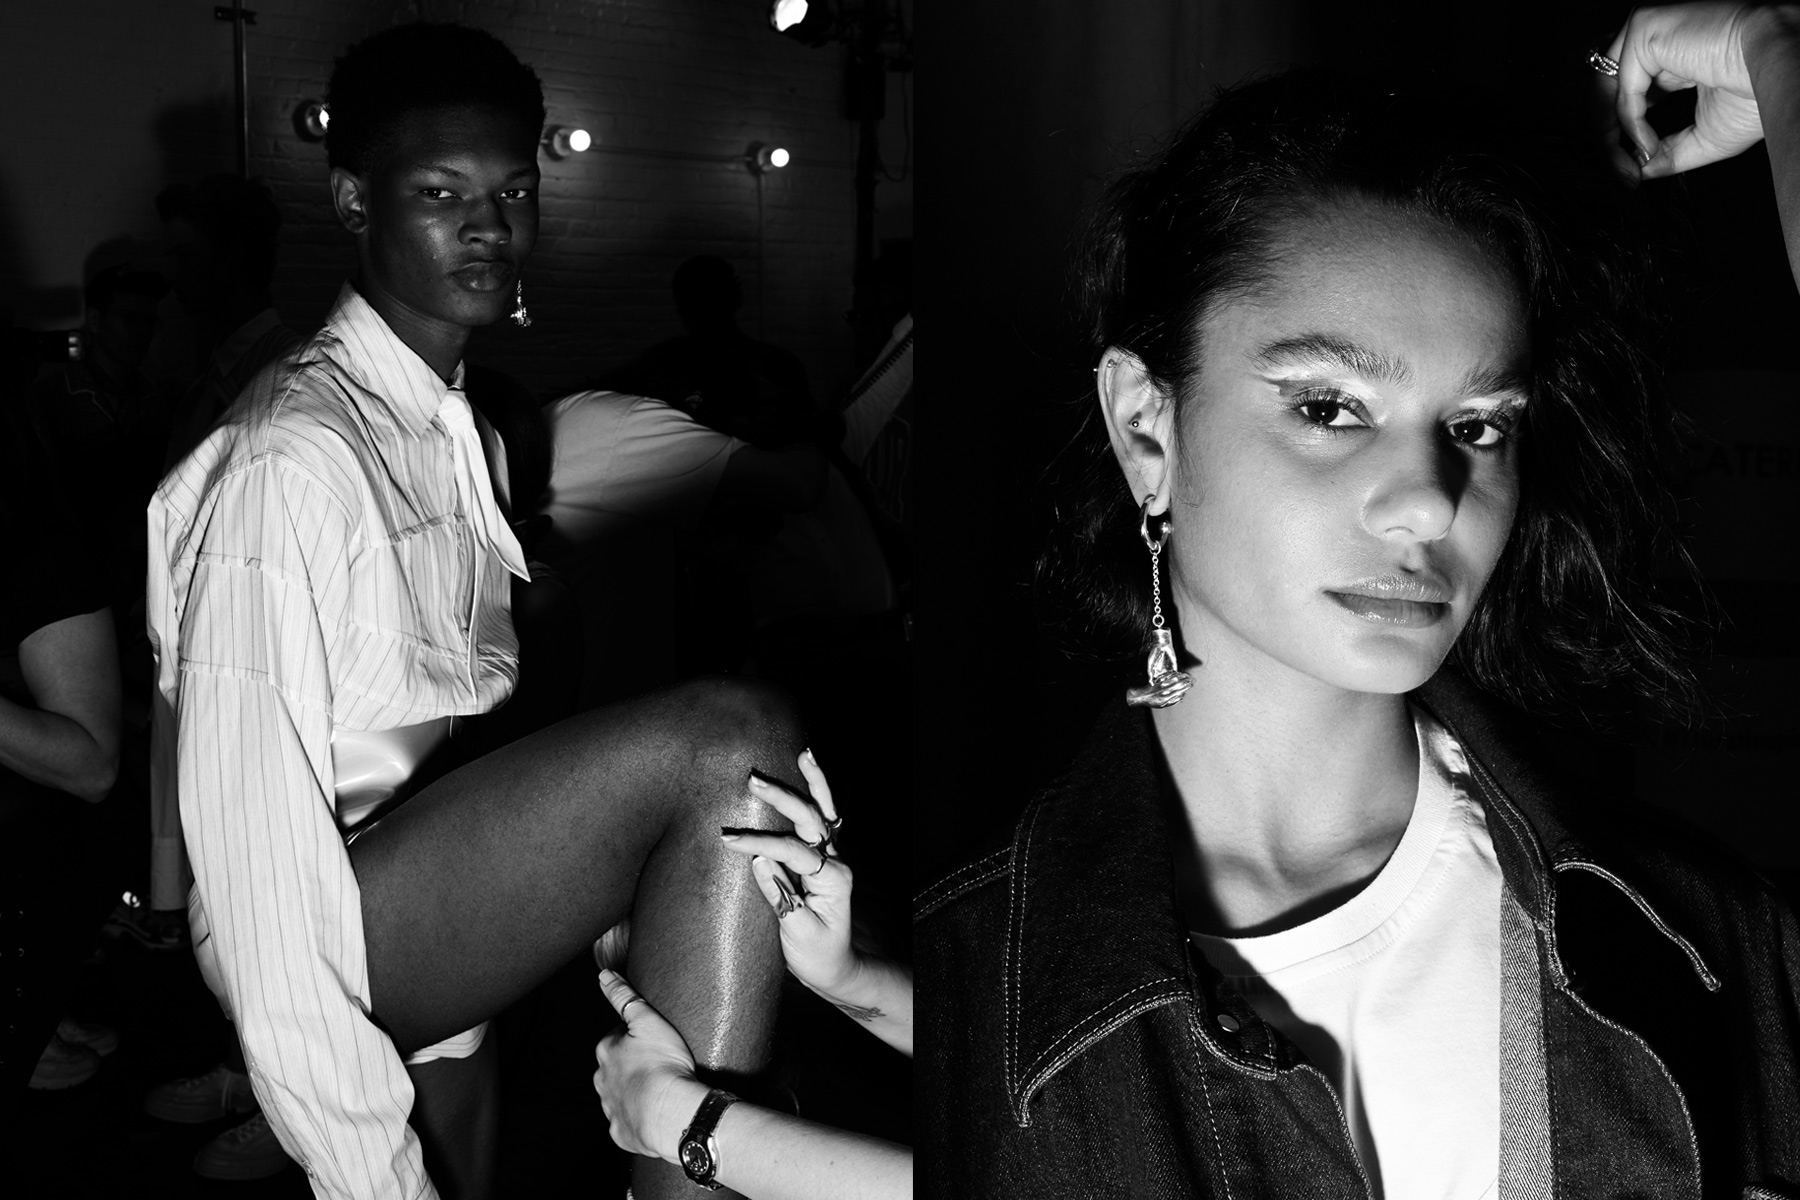 Model Jabali Sandiford backstage in makeup at the Feng Chen Wang Spring 2019 menswear show. Photography by Alexander Thompson for Ponyboy magazine.